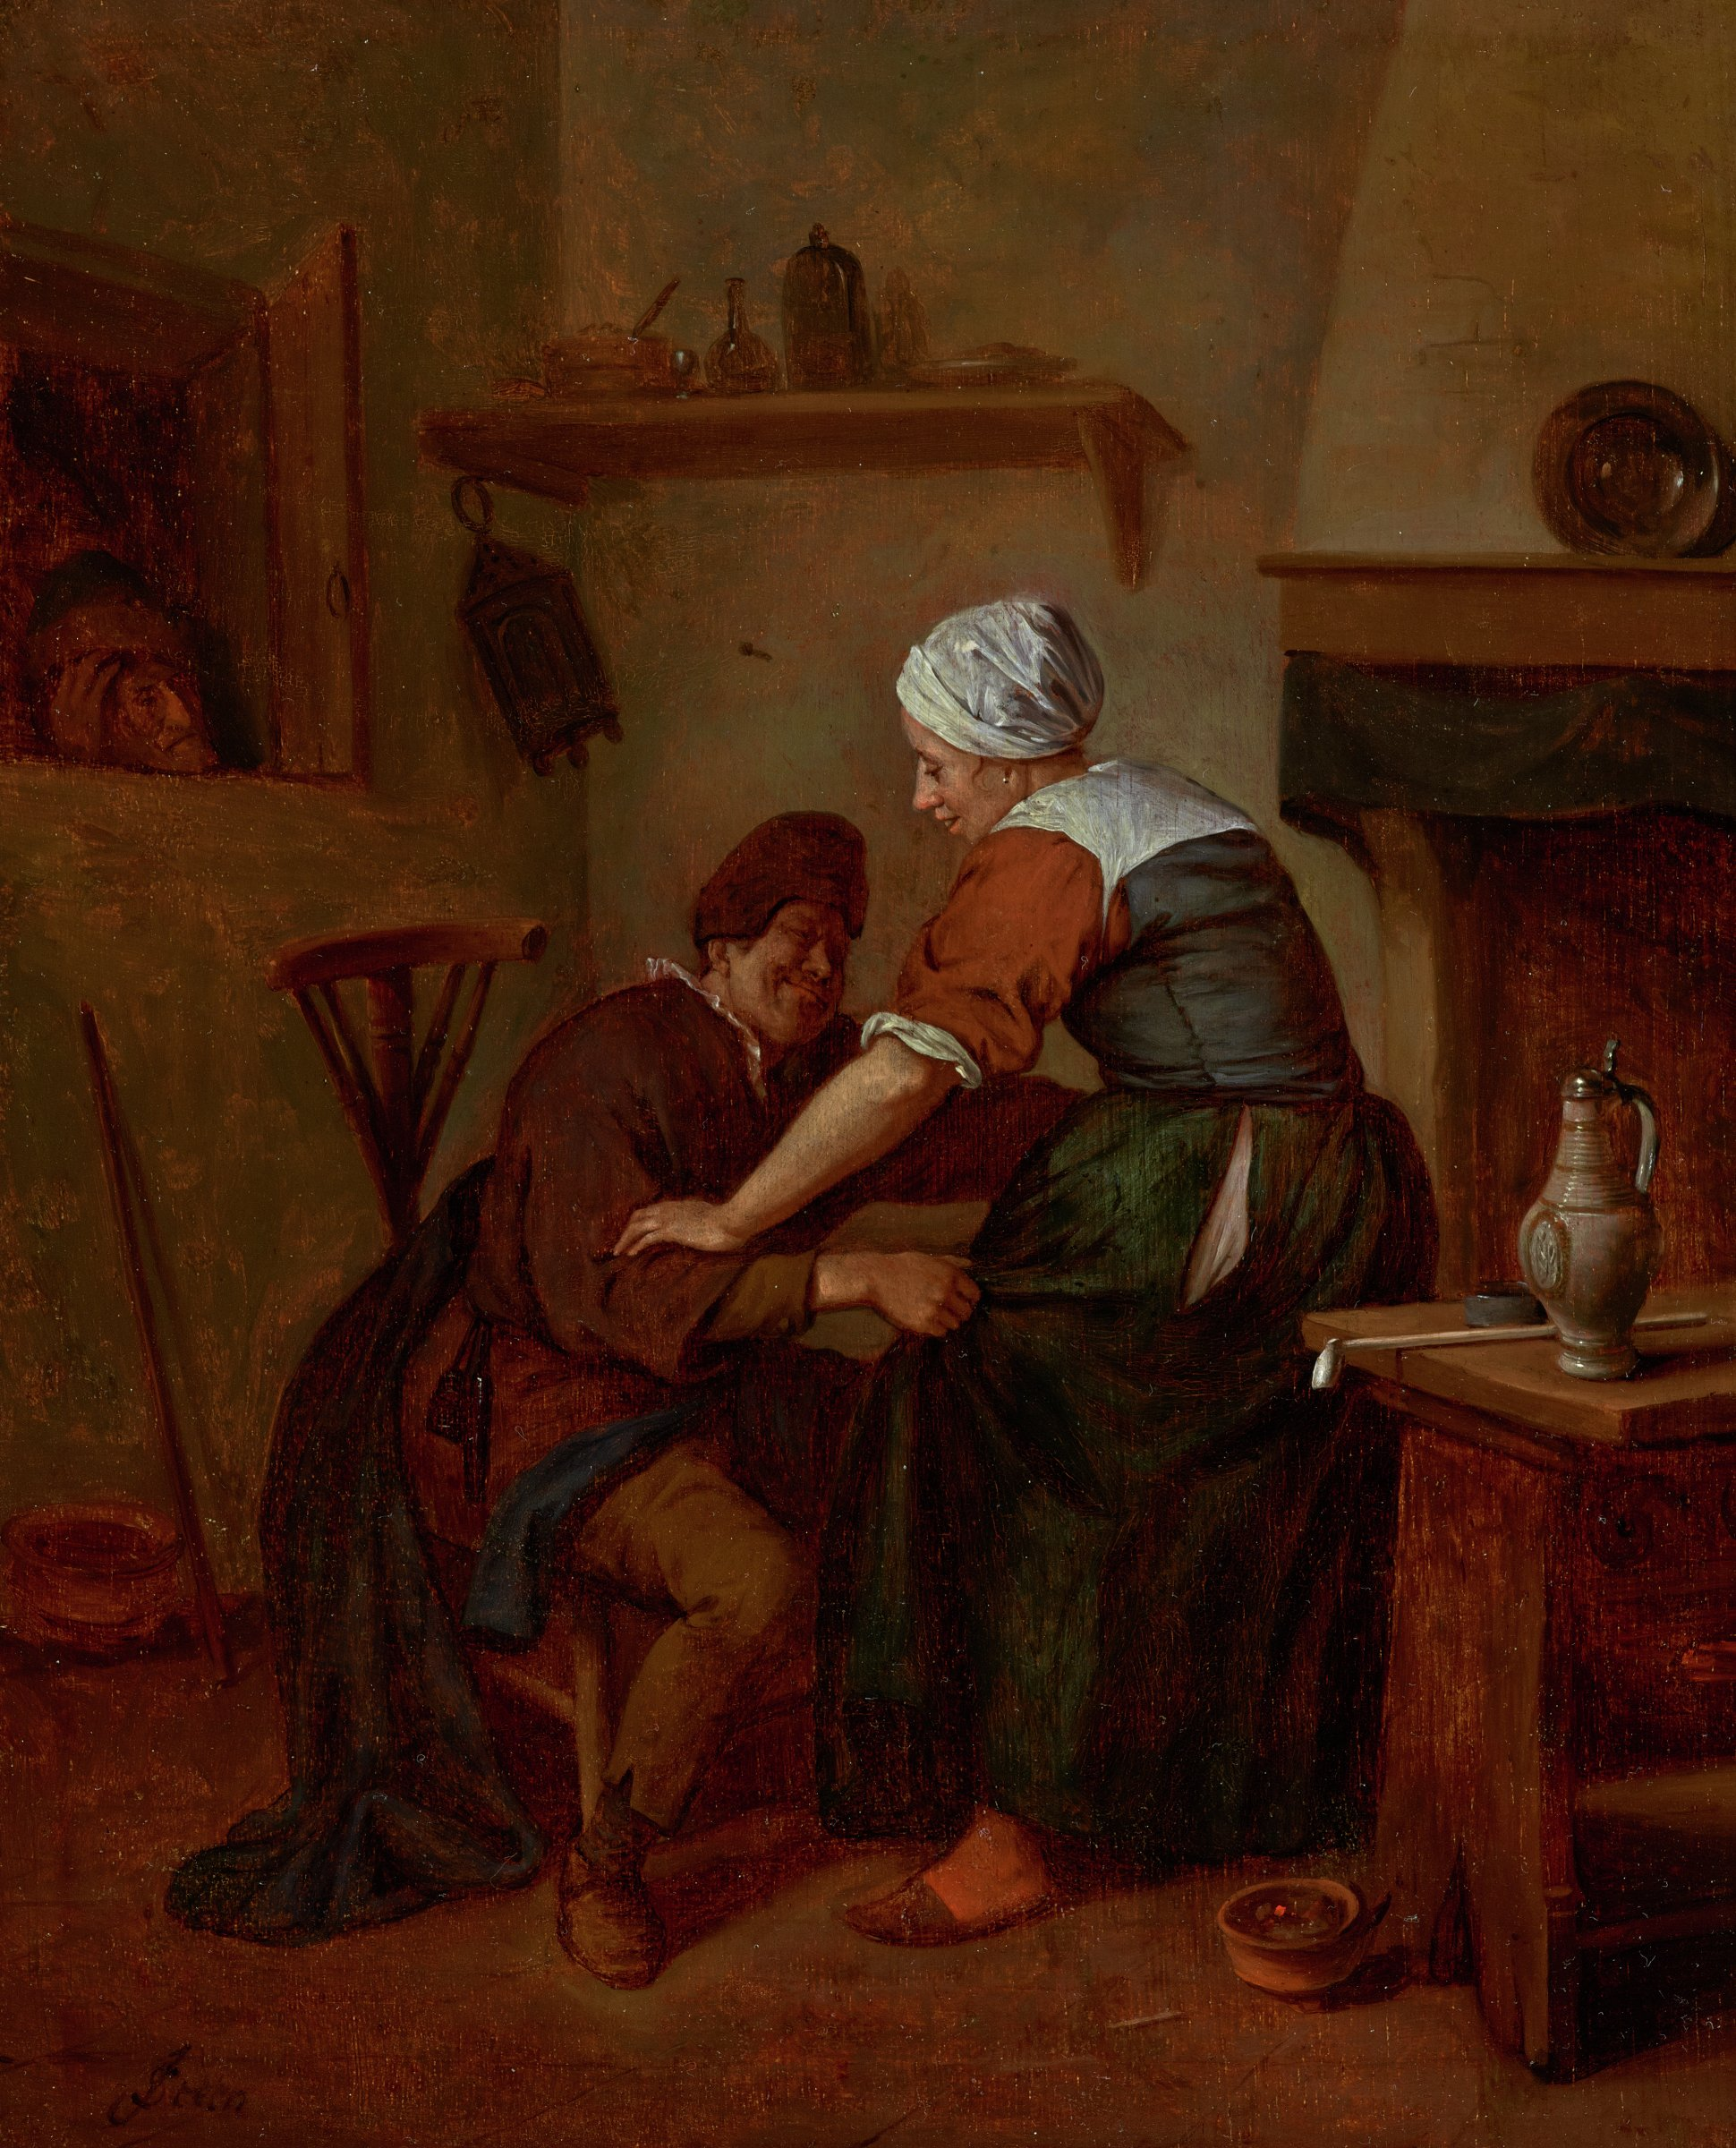 Interior with Figures, Jan Steen, oil on wood